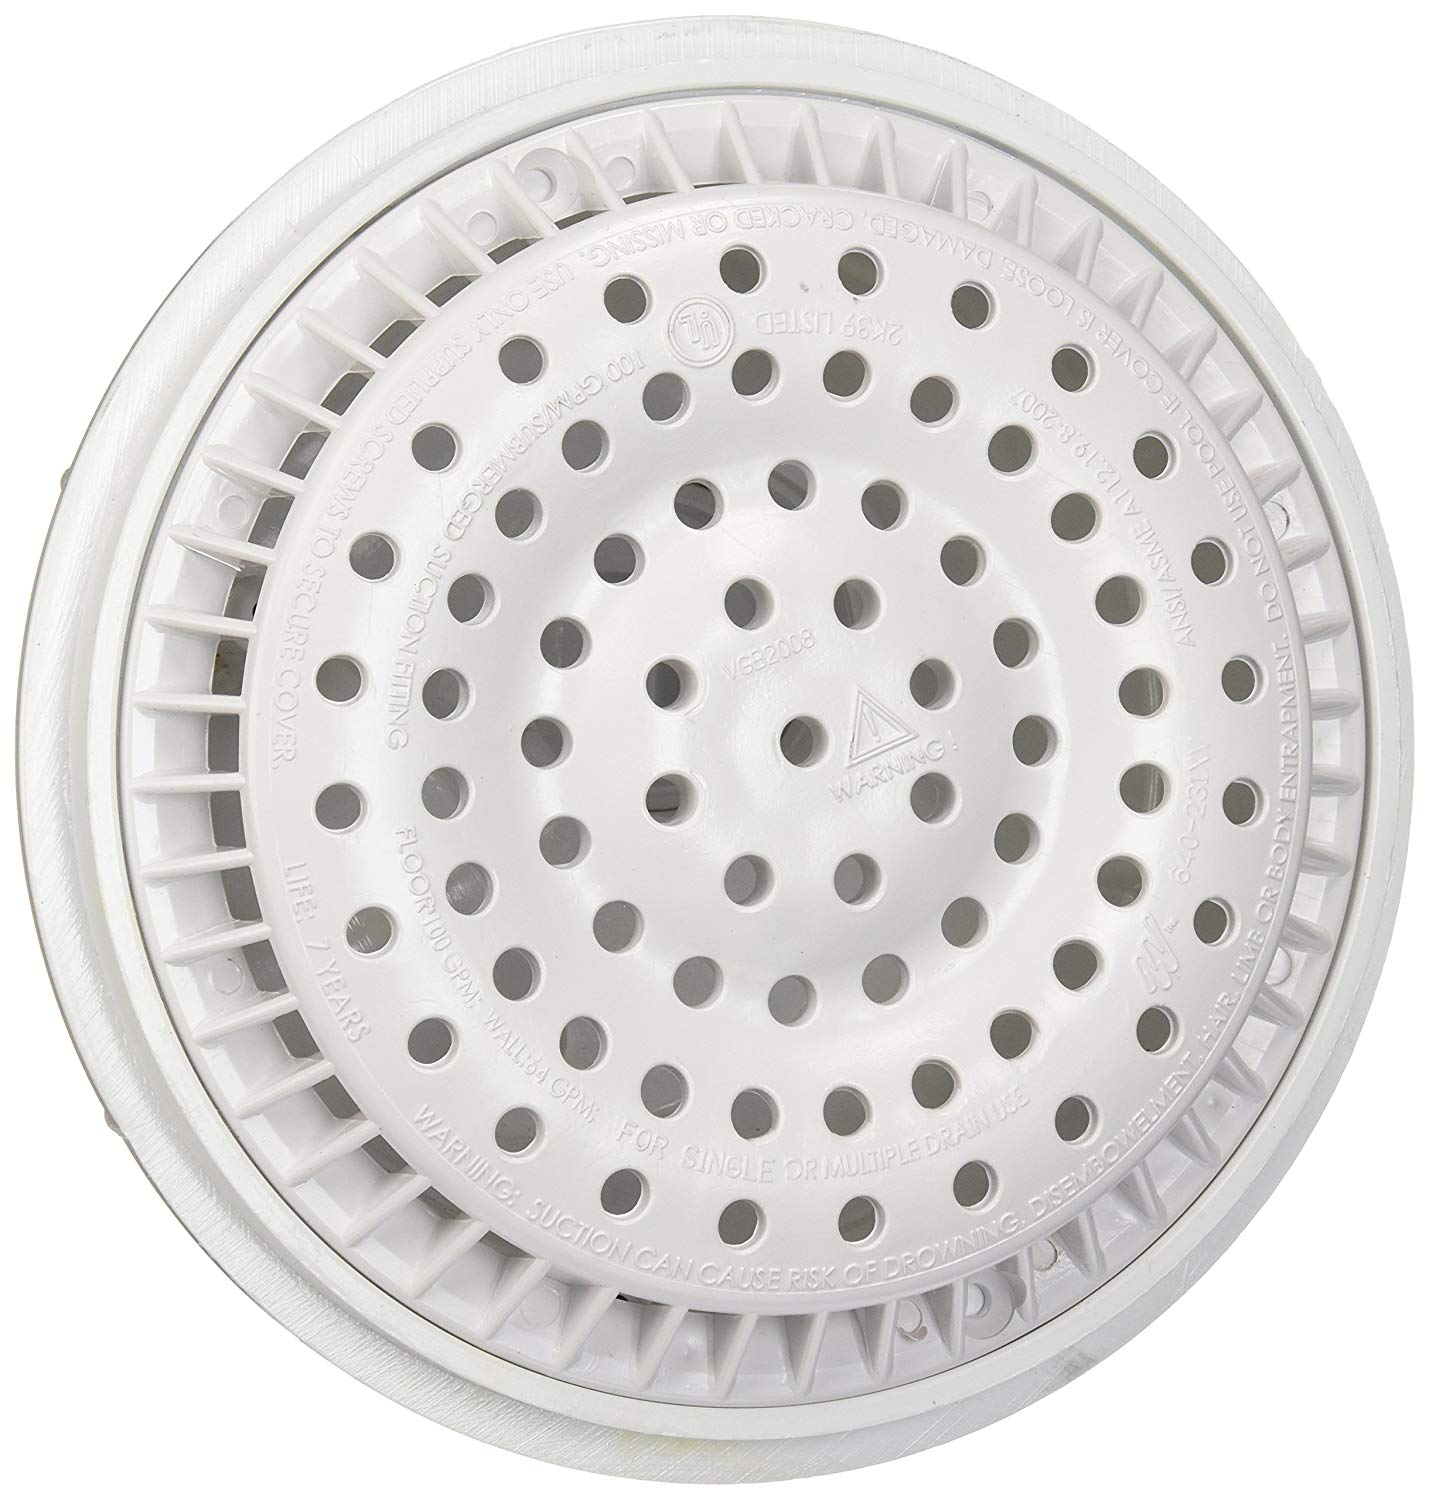 Poweka 640-2550 Main Drain Av, 2-Inch, White